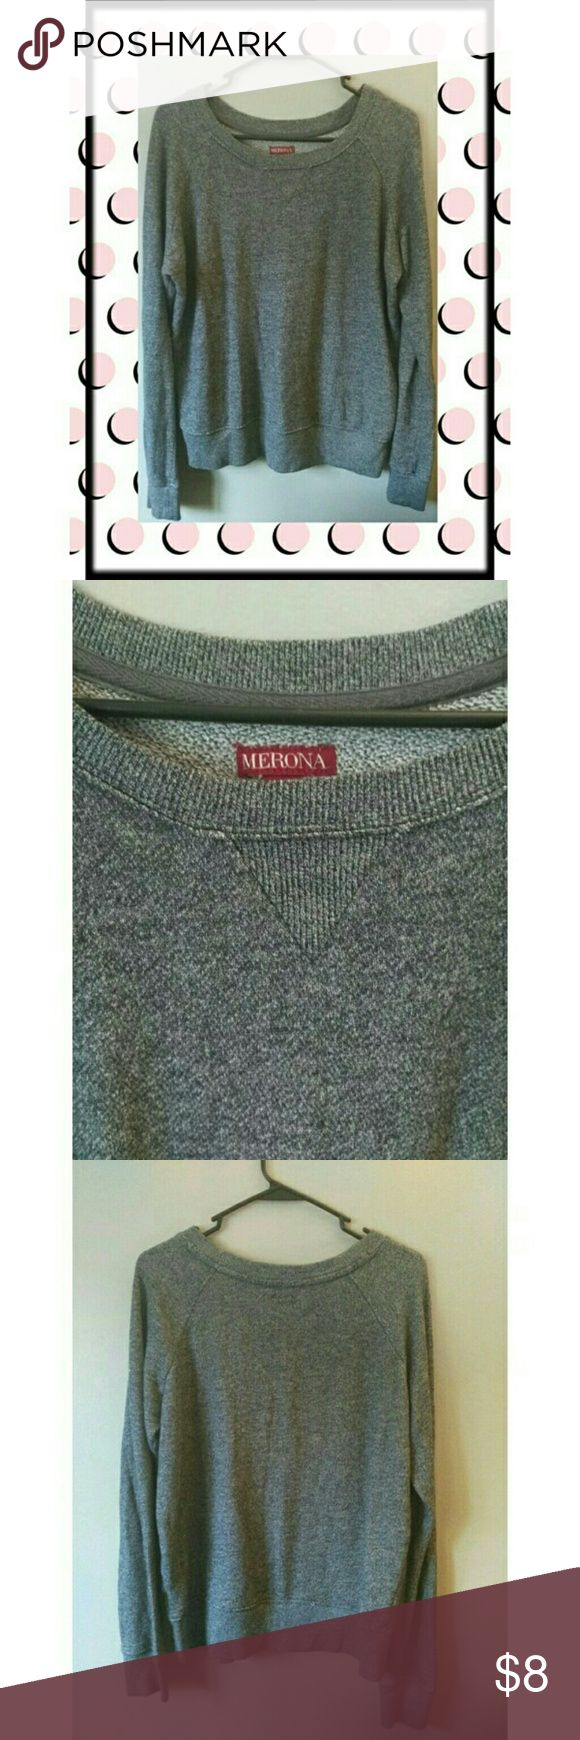 "Women's Merona Sweatshirt Cute and cozy Merona sweatshirt in just like new condition. Perfect for fall and layering or wrapping around your waist in the newest trend. This sweatshirt is also a dressy enough neutral foundation for work. Cotton/poly, machine wash/dry, bust 26"", shoulder seam to hem 26"". Merona Tops Sweatshirts & Hoodies"